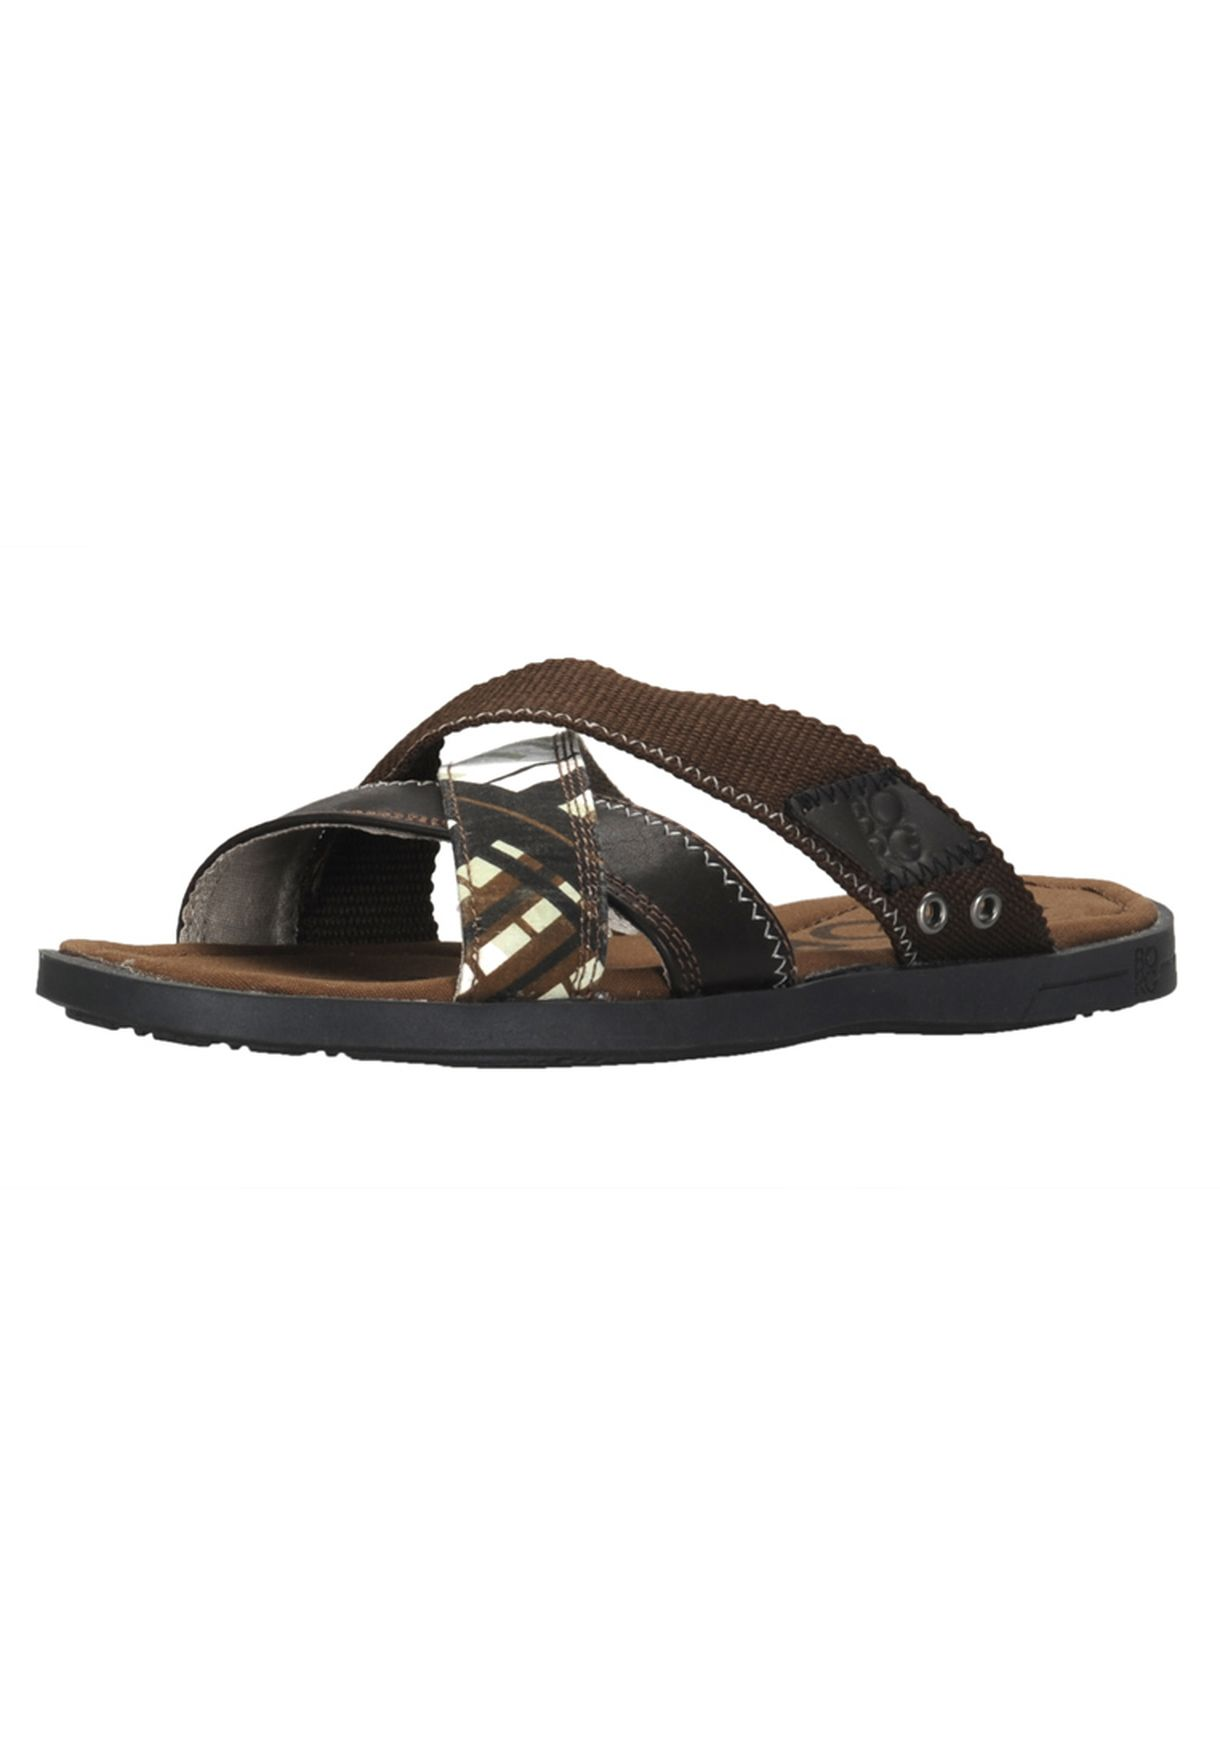 1f3130a42 Shop Bjorn Borg browns Casual Casual Sandals for Men in UAE ...